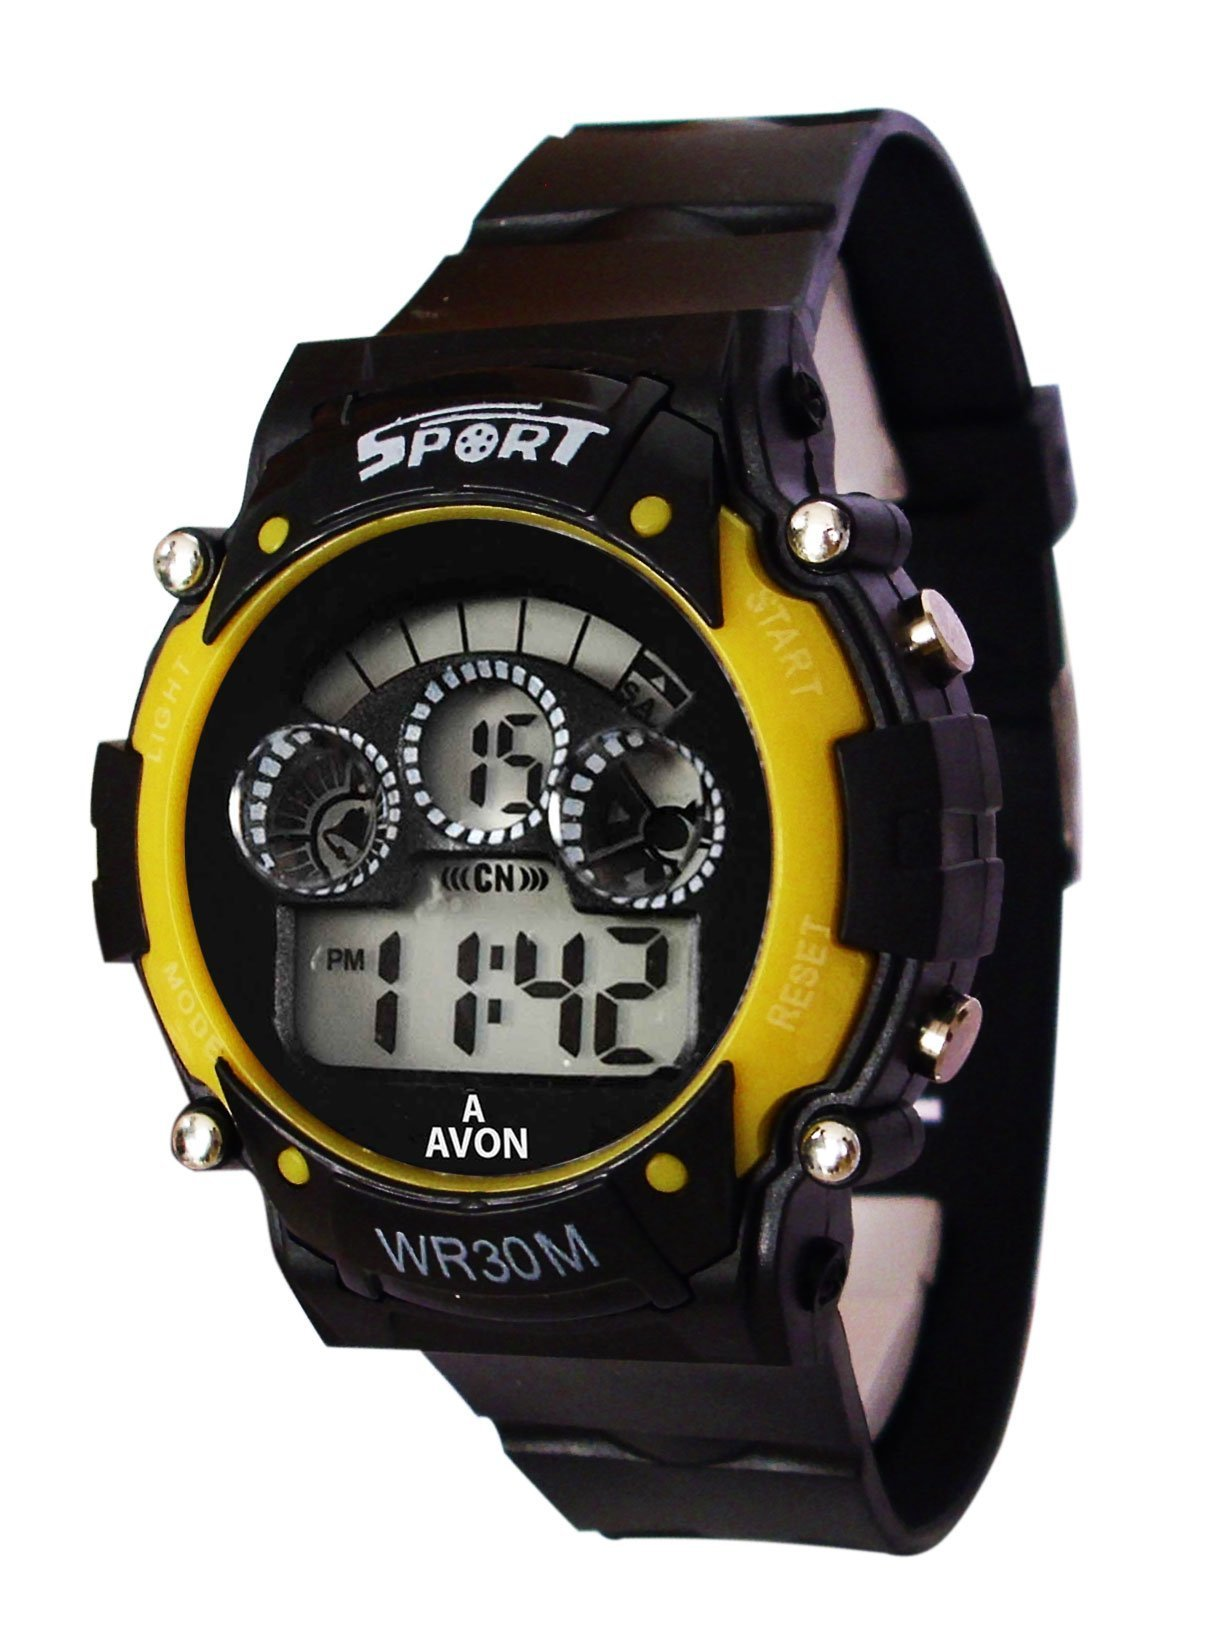 Amazon price history for A Avon Sports Digital Colorful Watch for Kids-1002331